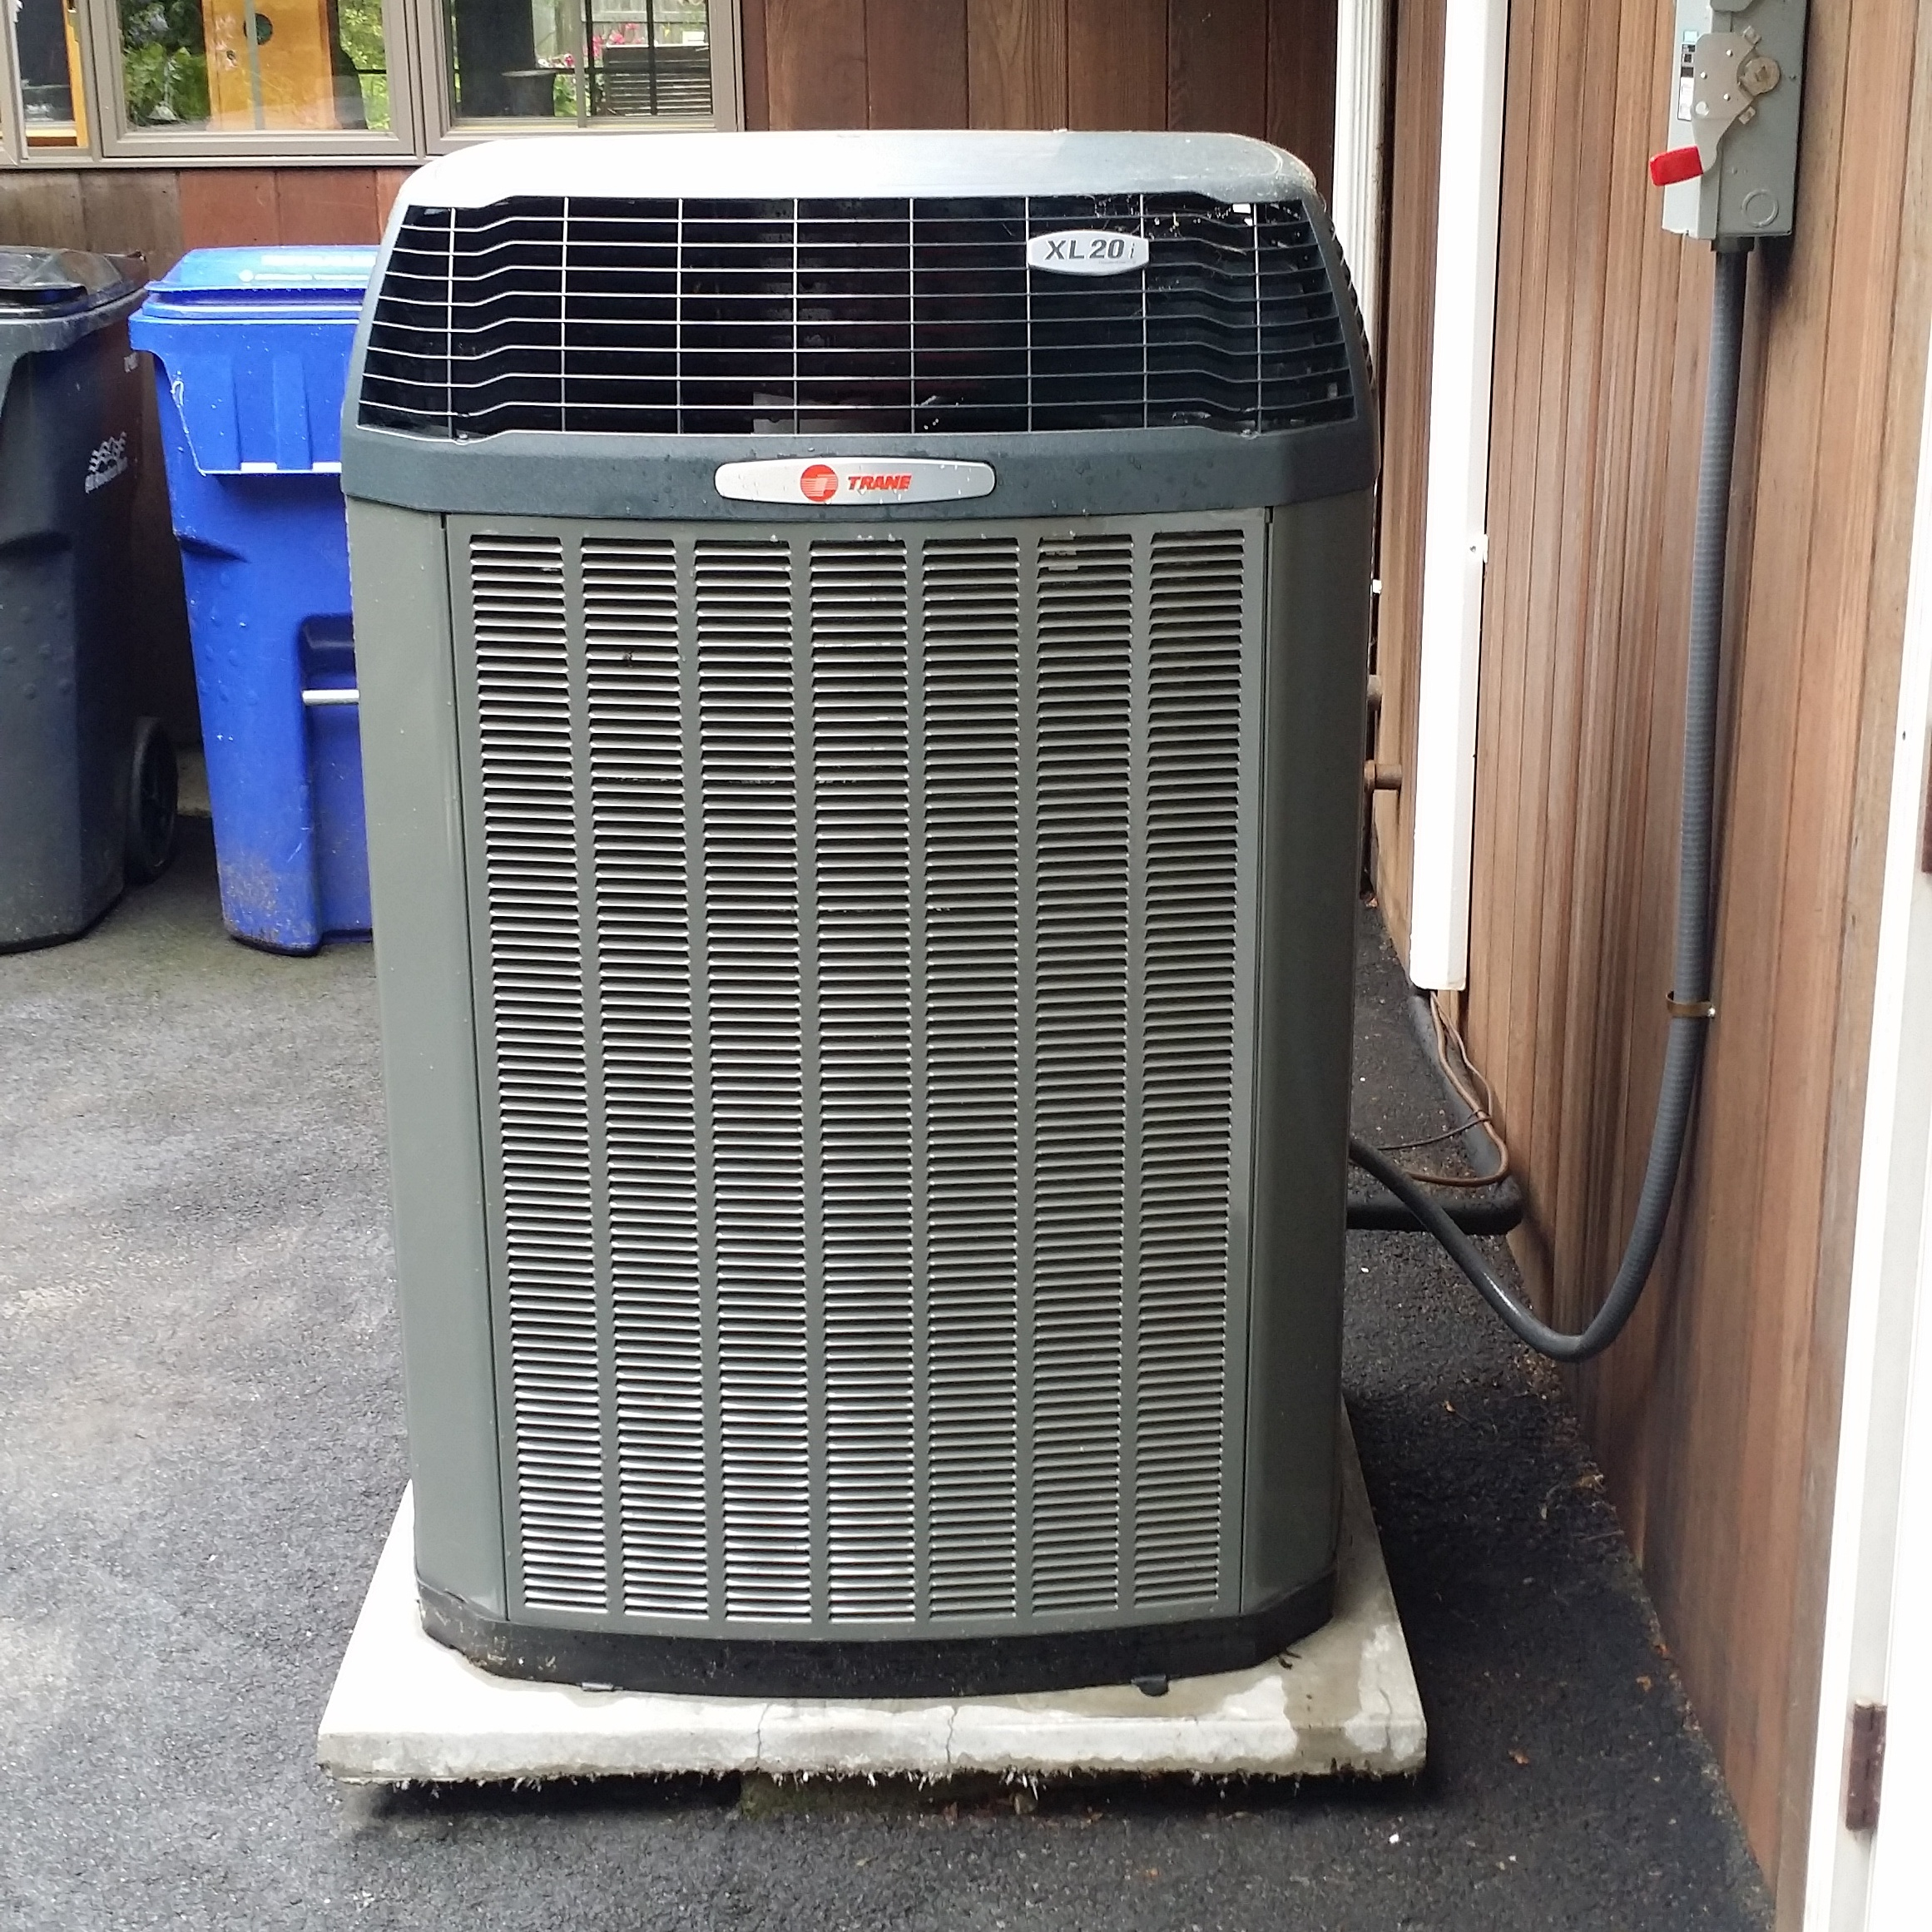 trane air conditioner. central air conditioning installation trane conditioner n